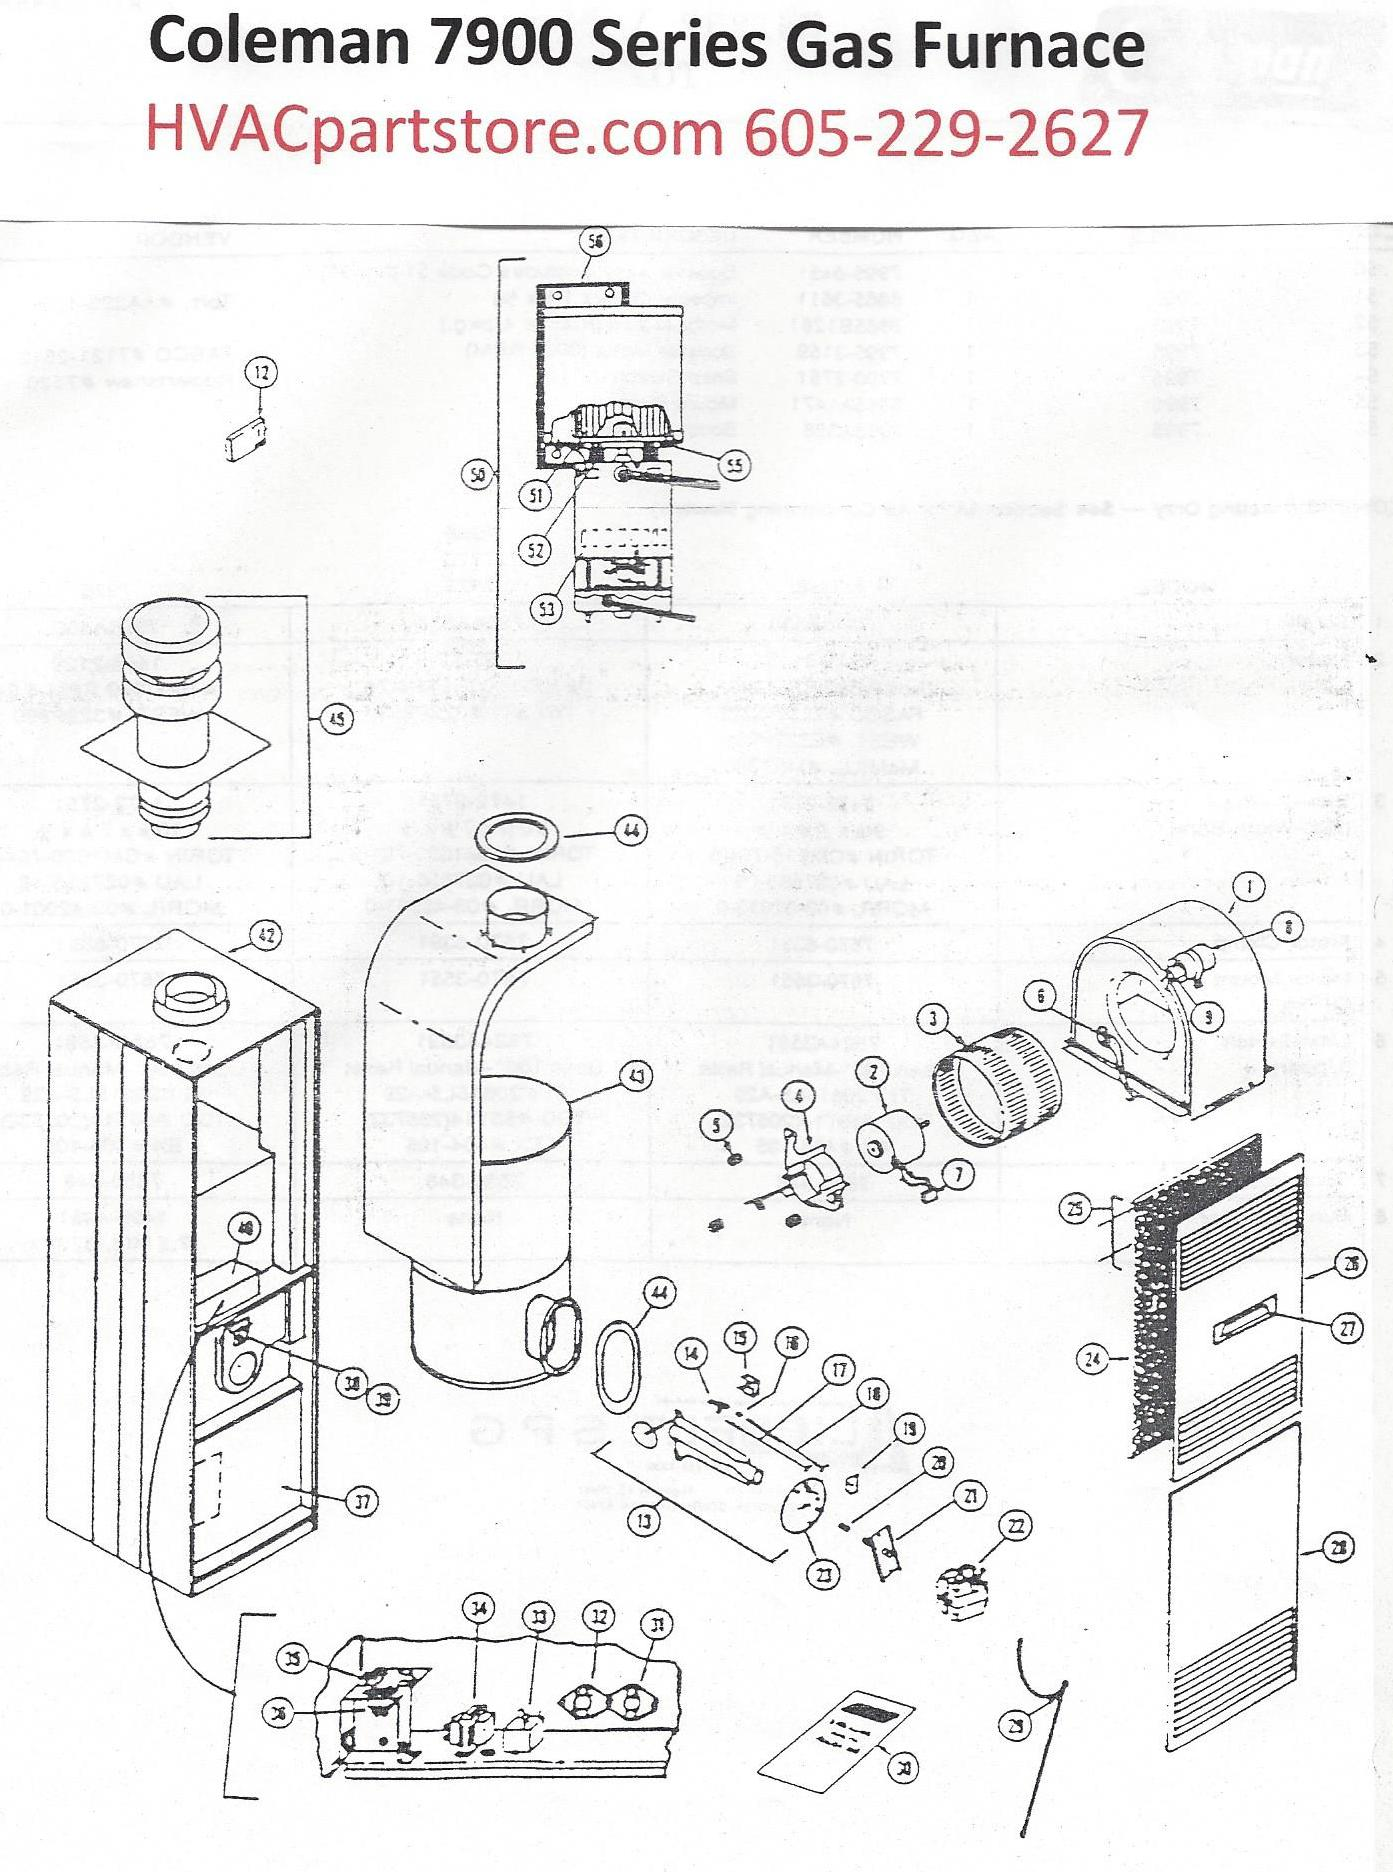 relay pr380 schematic wiring diagram 7975 856 coleman gas furnace parts     page 2     hvacpartstore  7975 856 coleman gas furnace parts